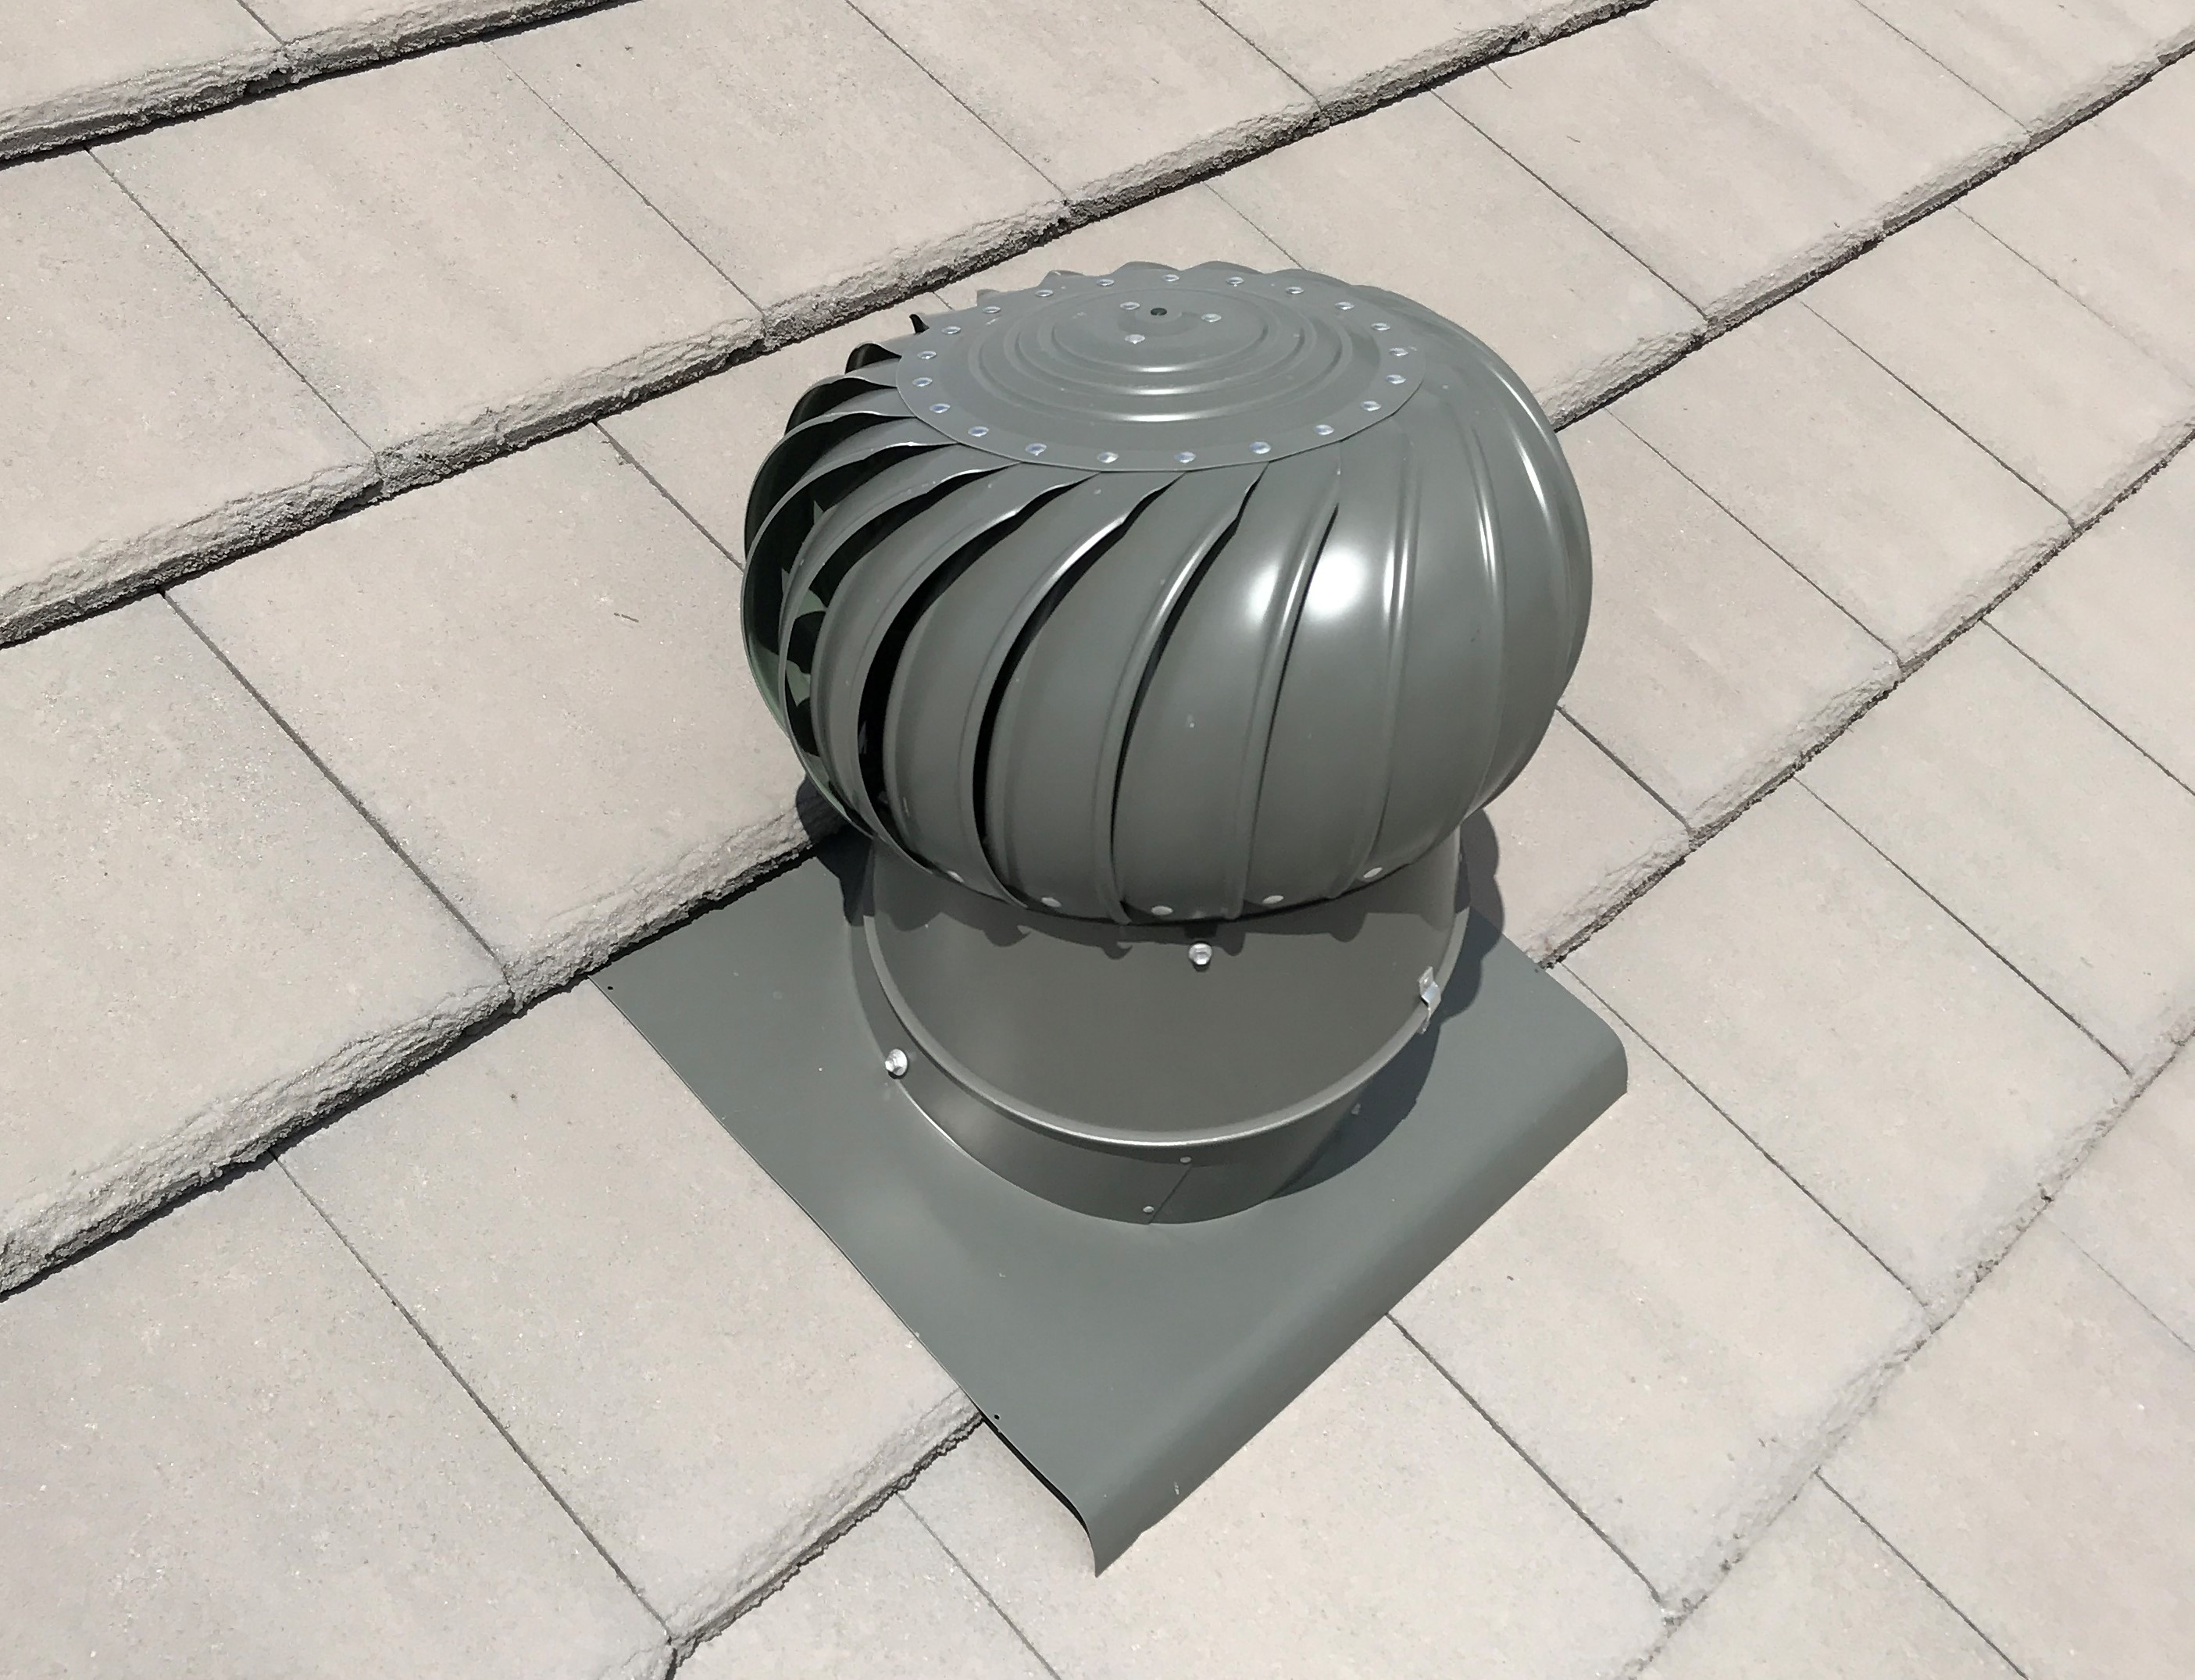 Whirlybird Roof Vents : Whirlybird eco solar vents roof